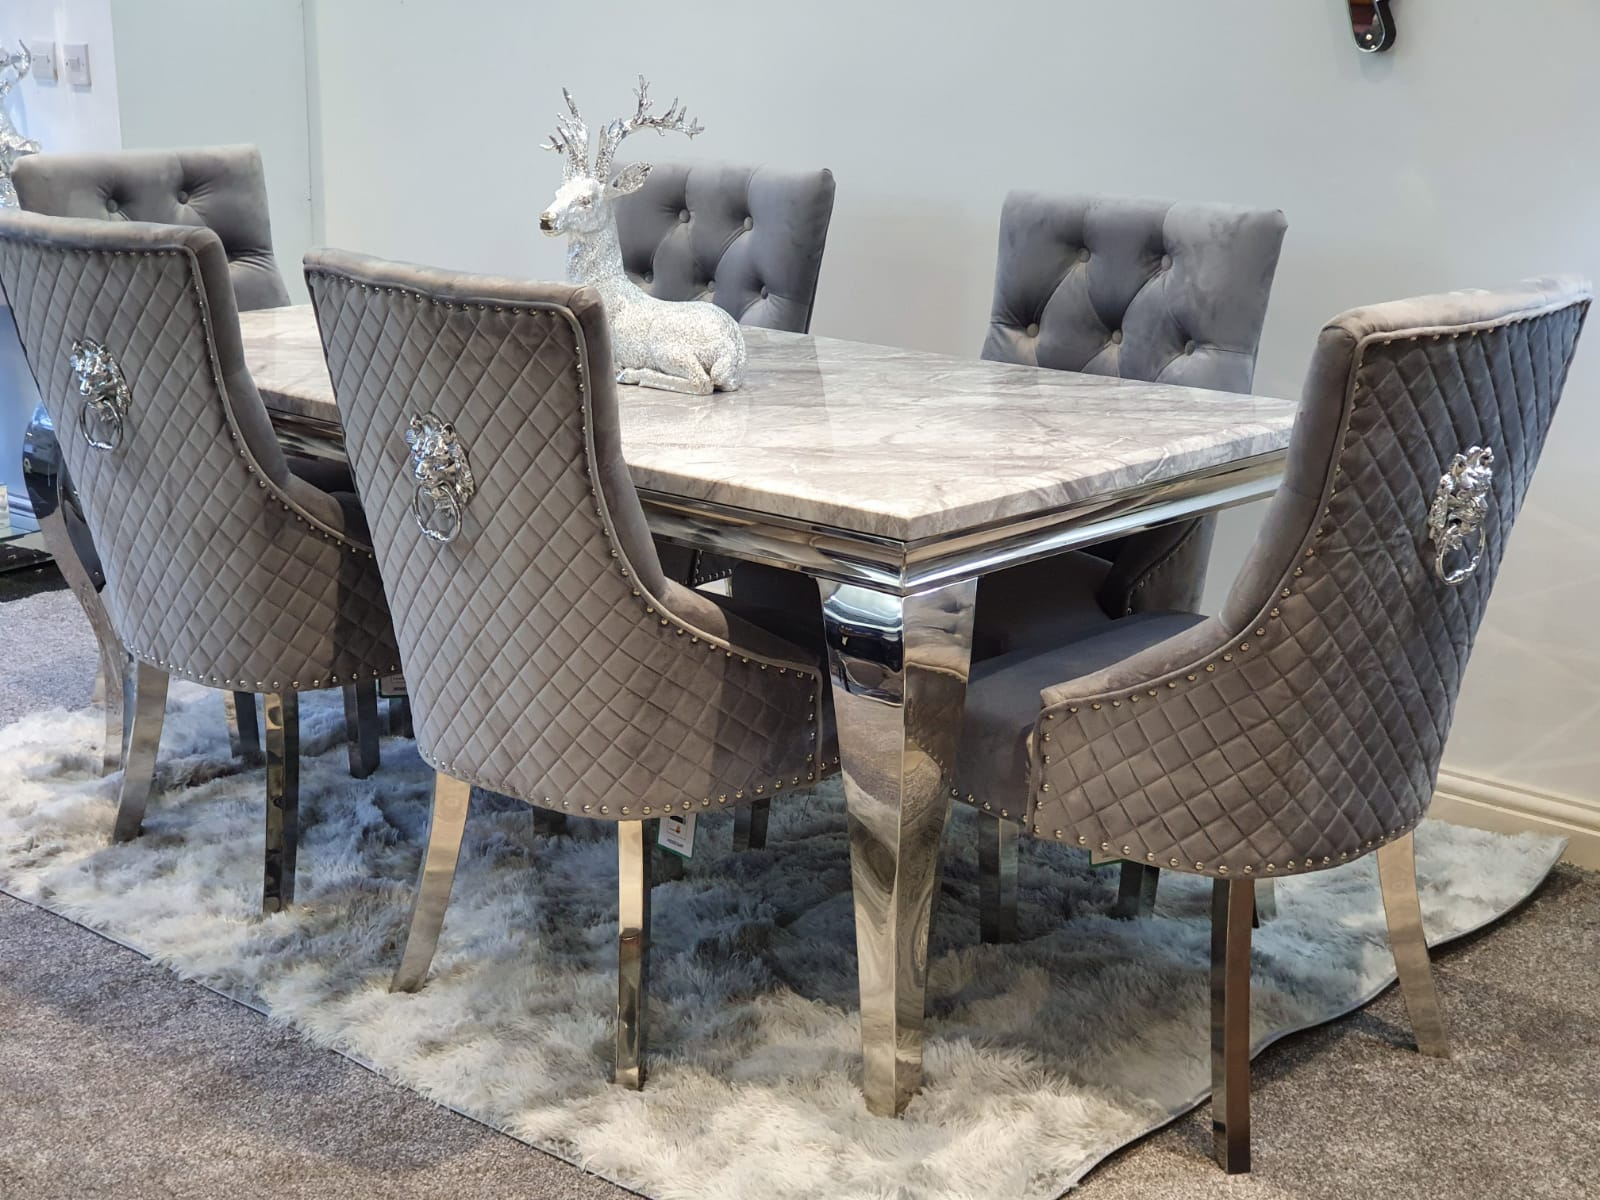 marble dining table majestic dining chairs lion knocker back grey plush velvet